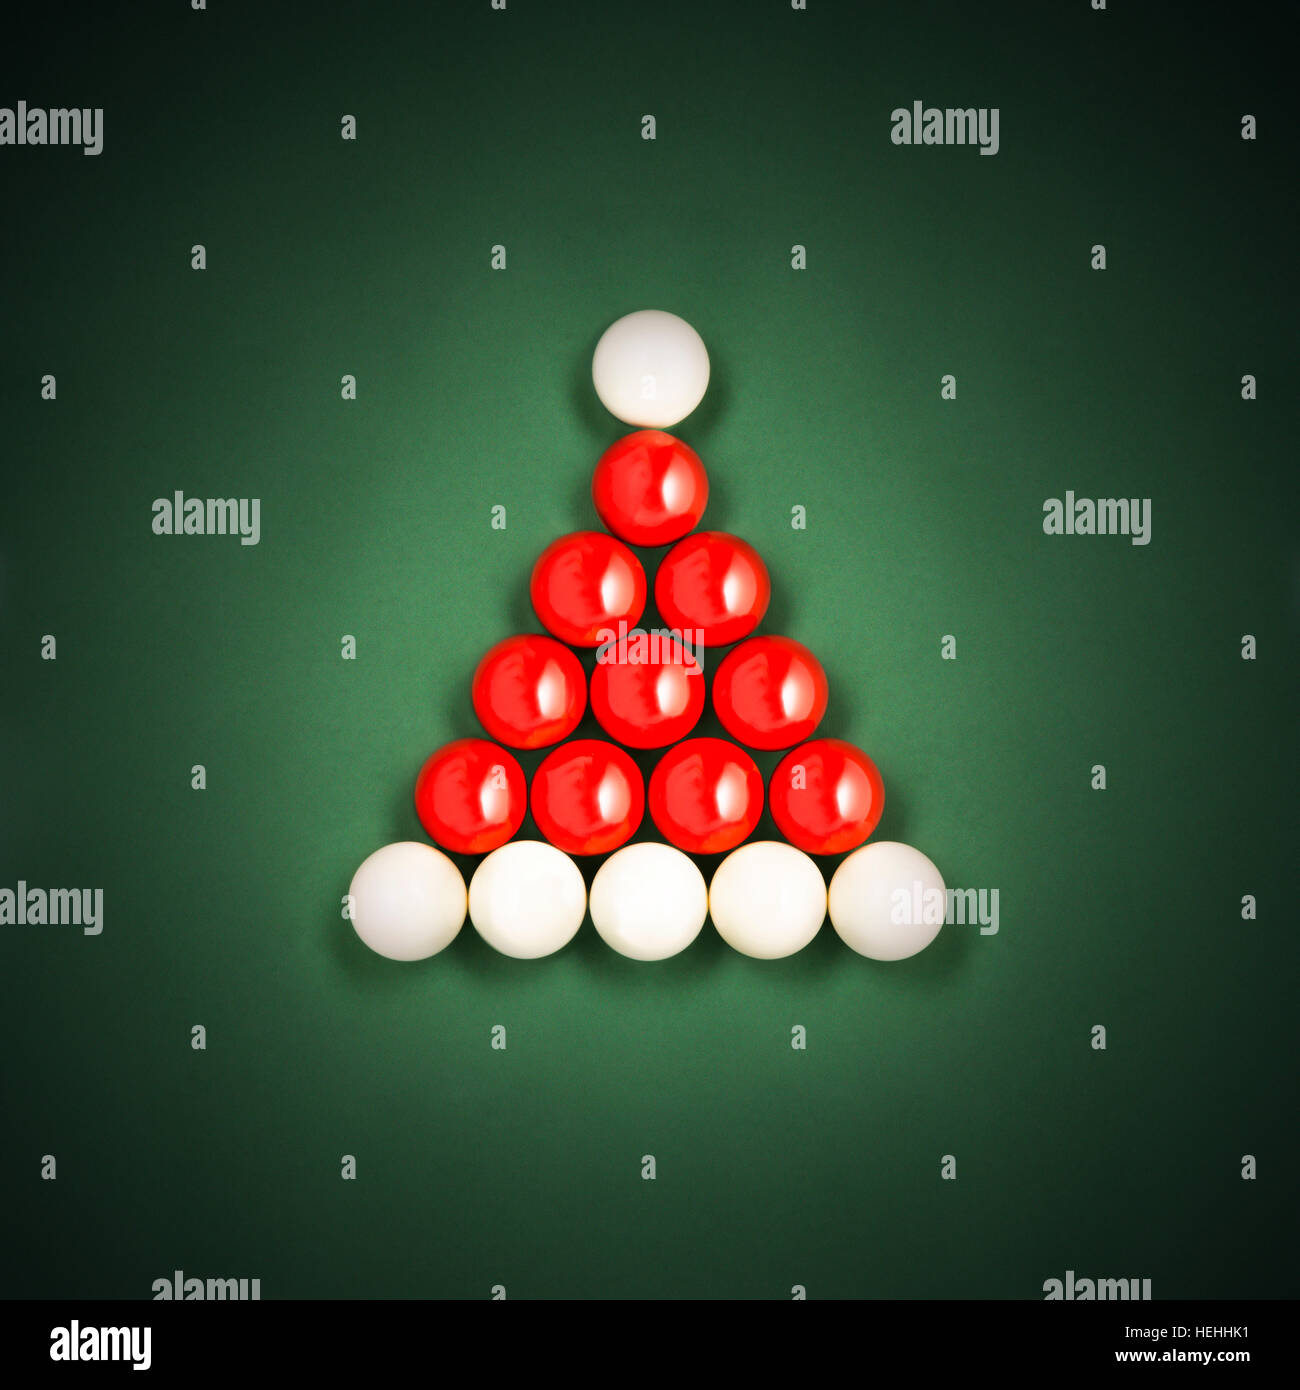 Snooker Ball Santa Hat Christmas cards made of red snooker balls and white cue balls on a green background - Stock Image